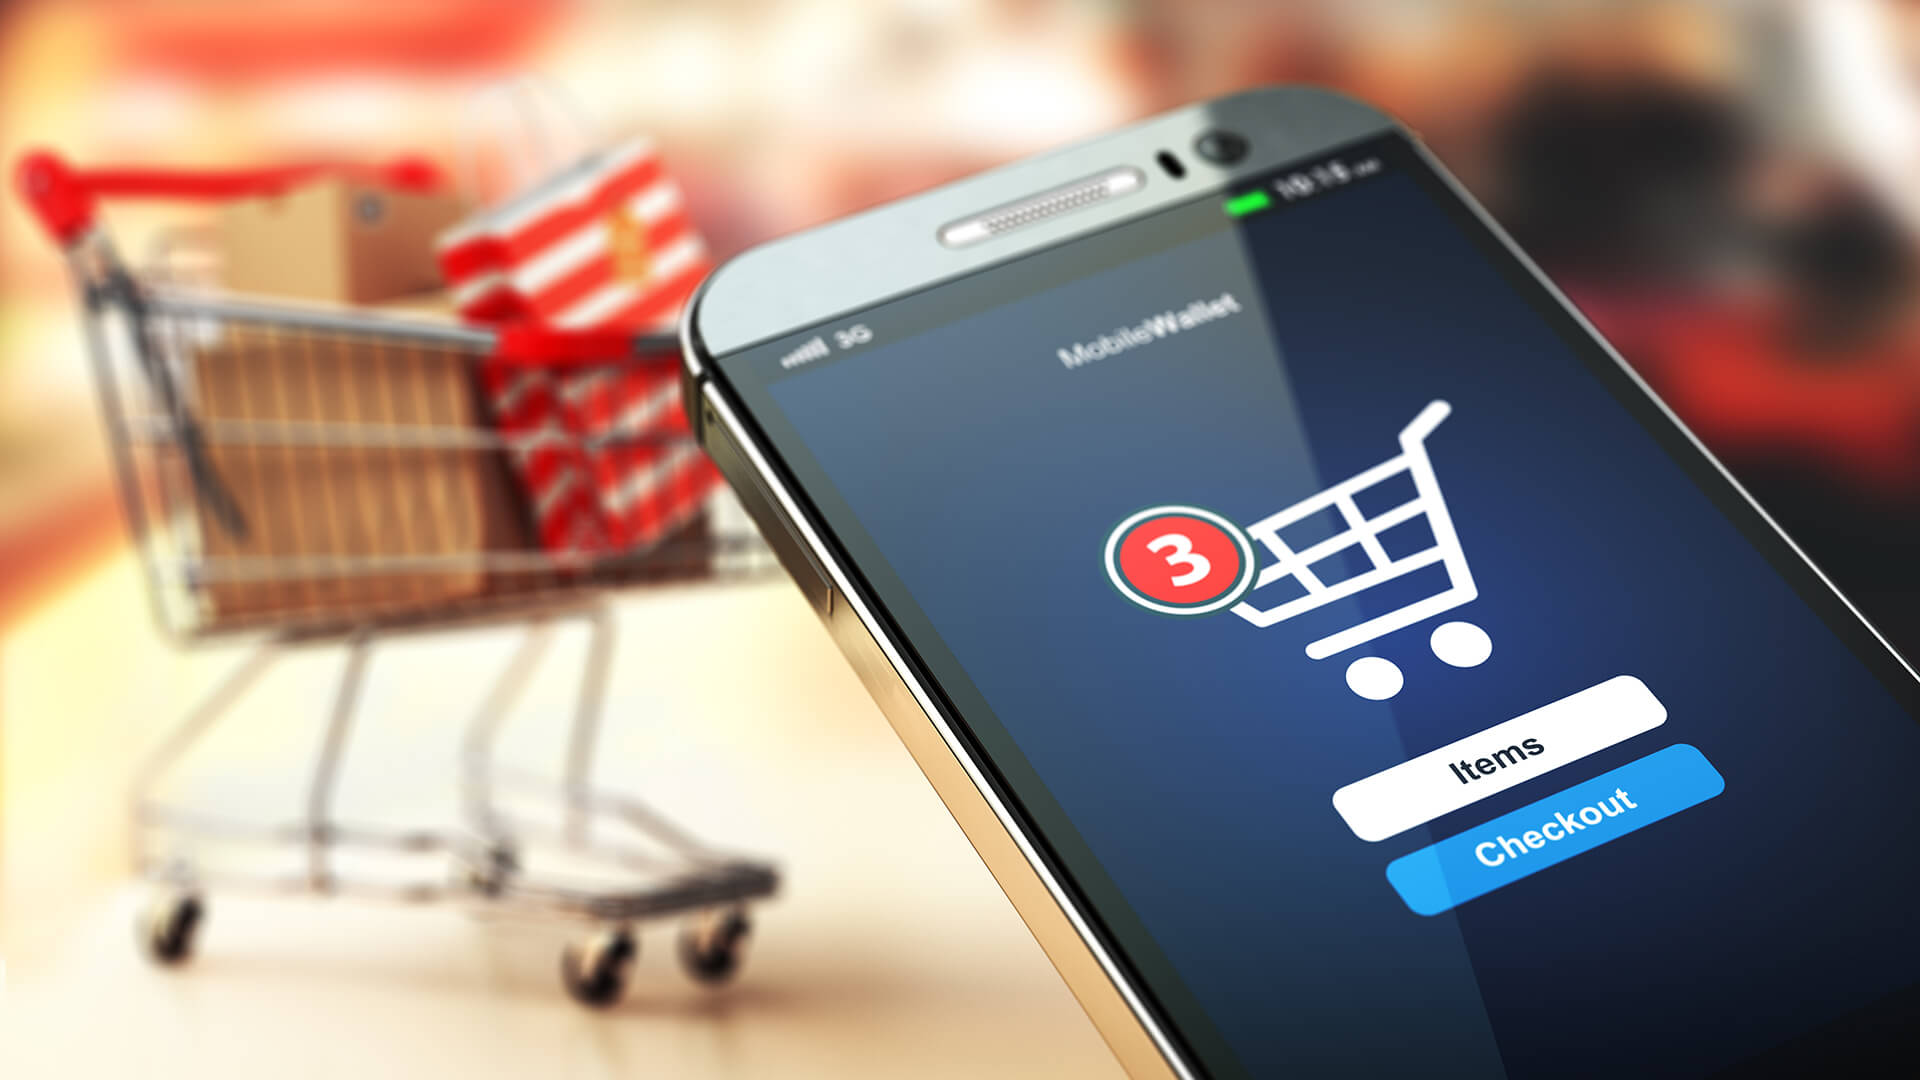 035tendencias en marketing digital 2019mobile-ecommerce-shopping